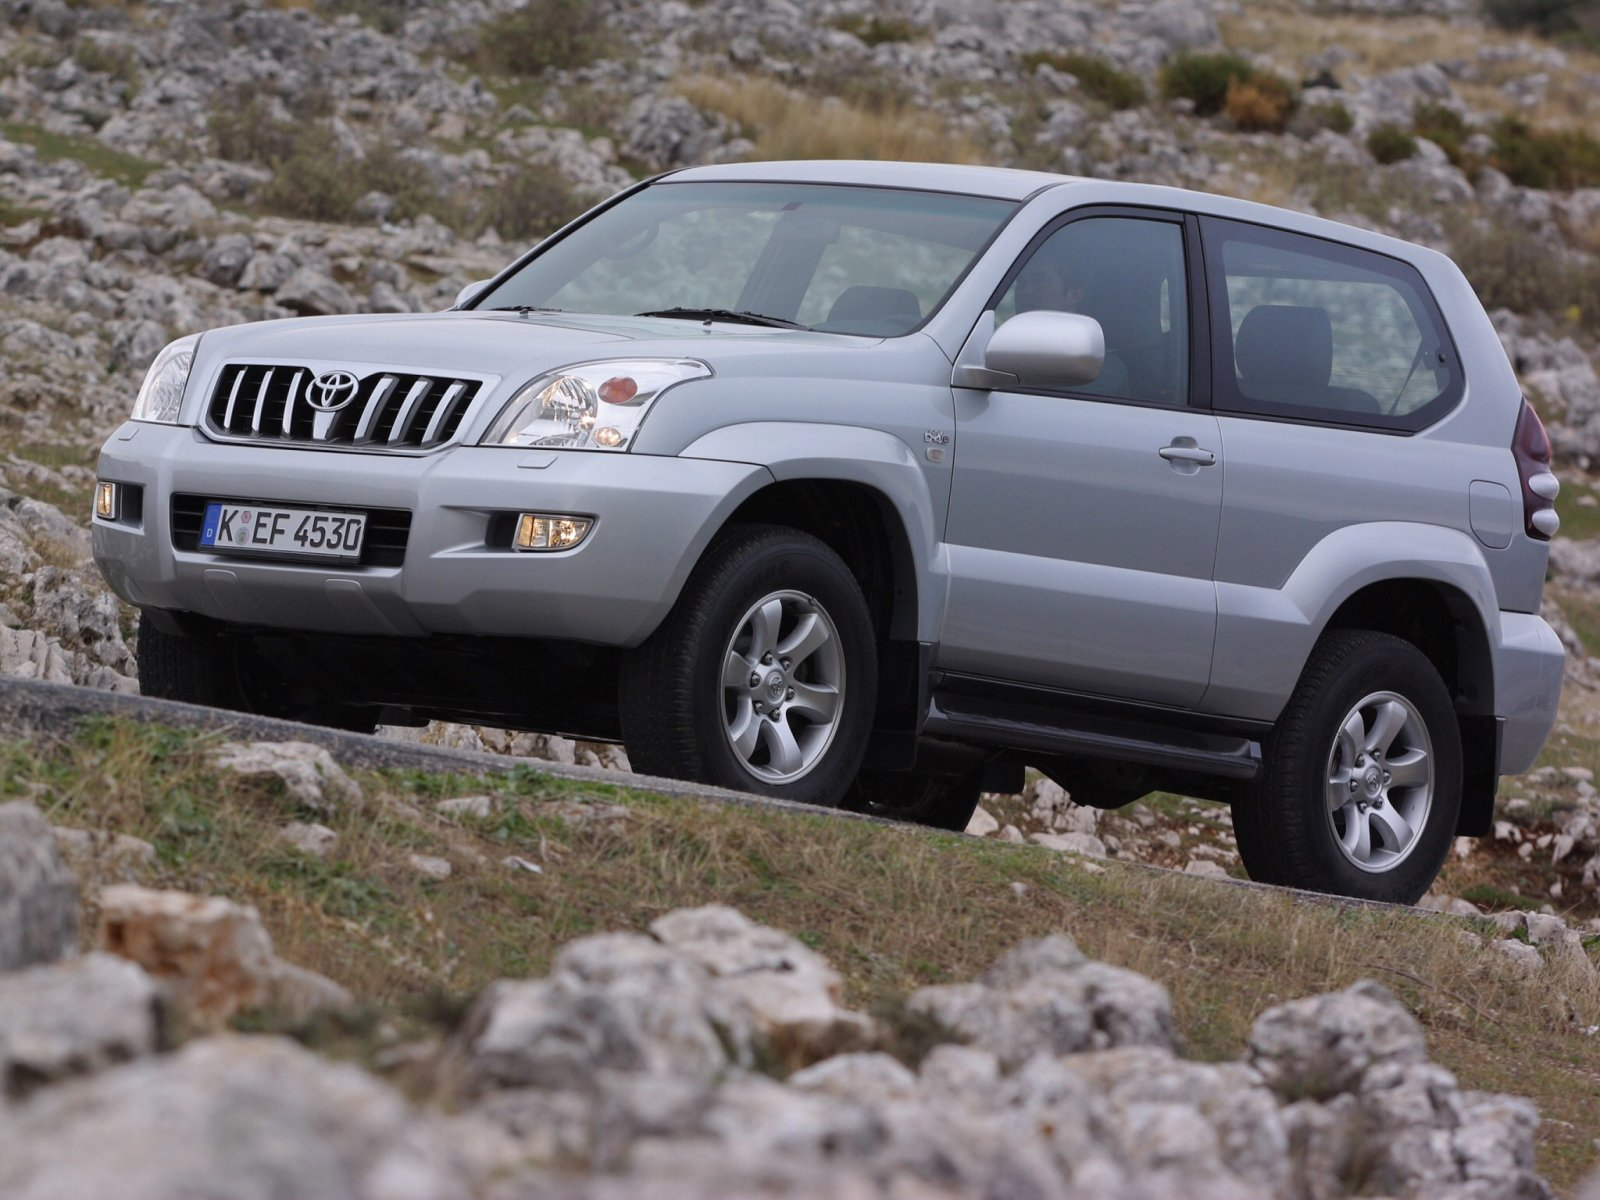 Toyota Land Cruiser Prado 3.0 2009 photo - 8